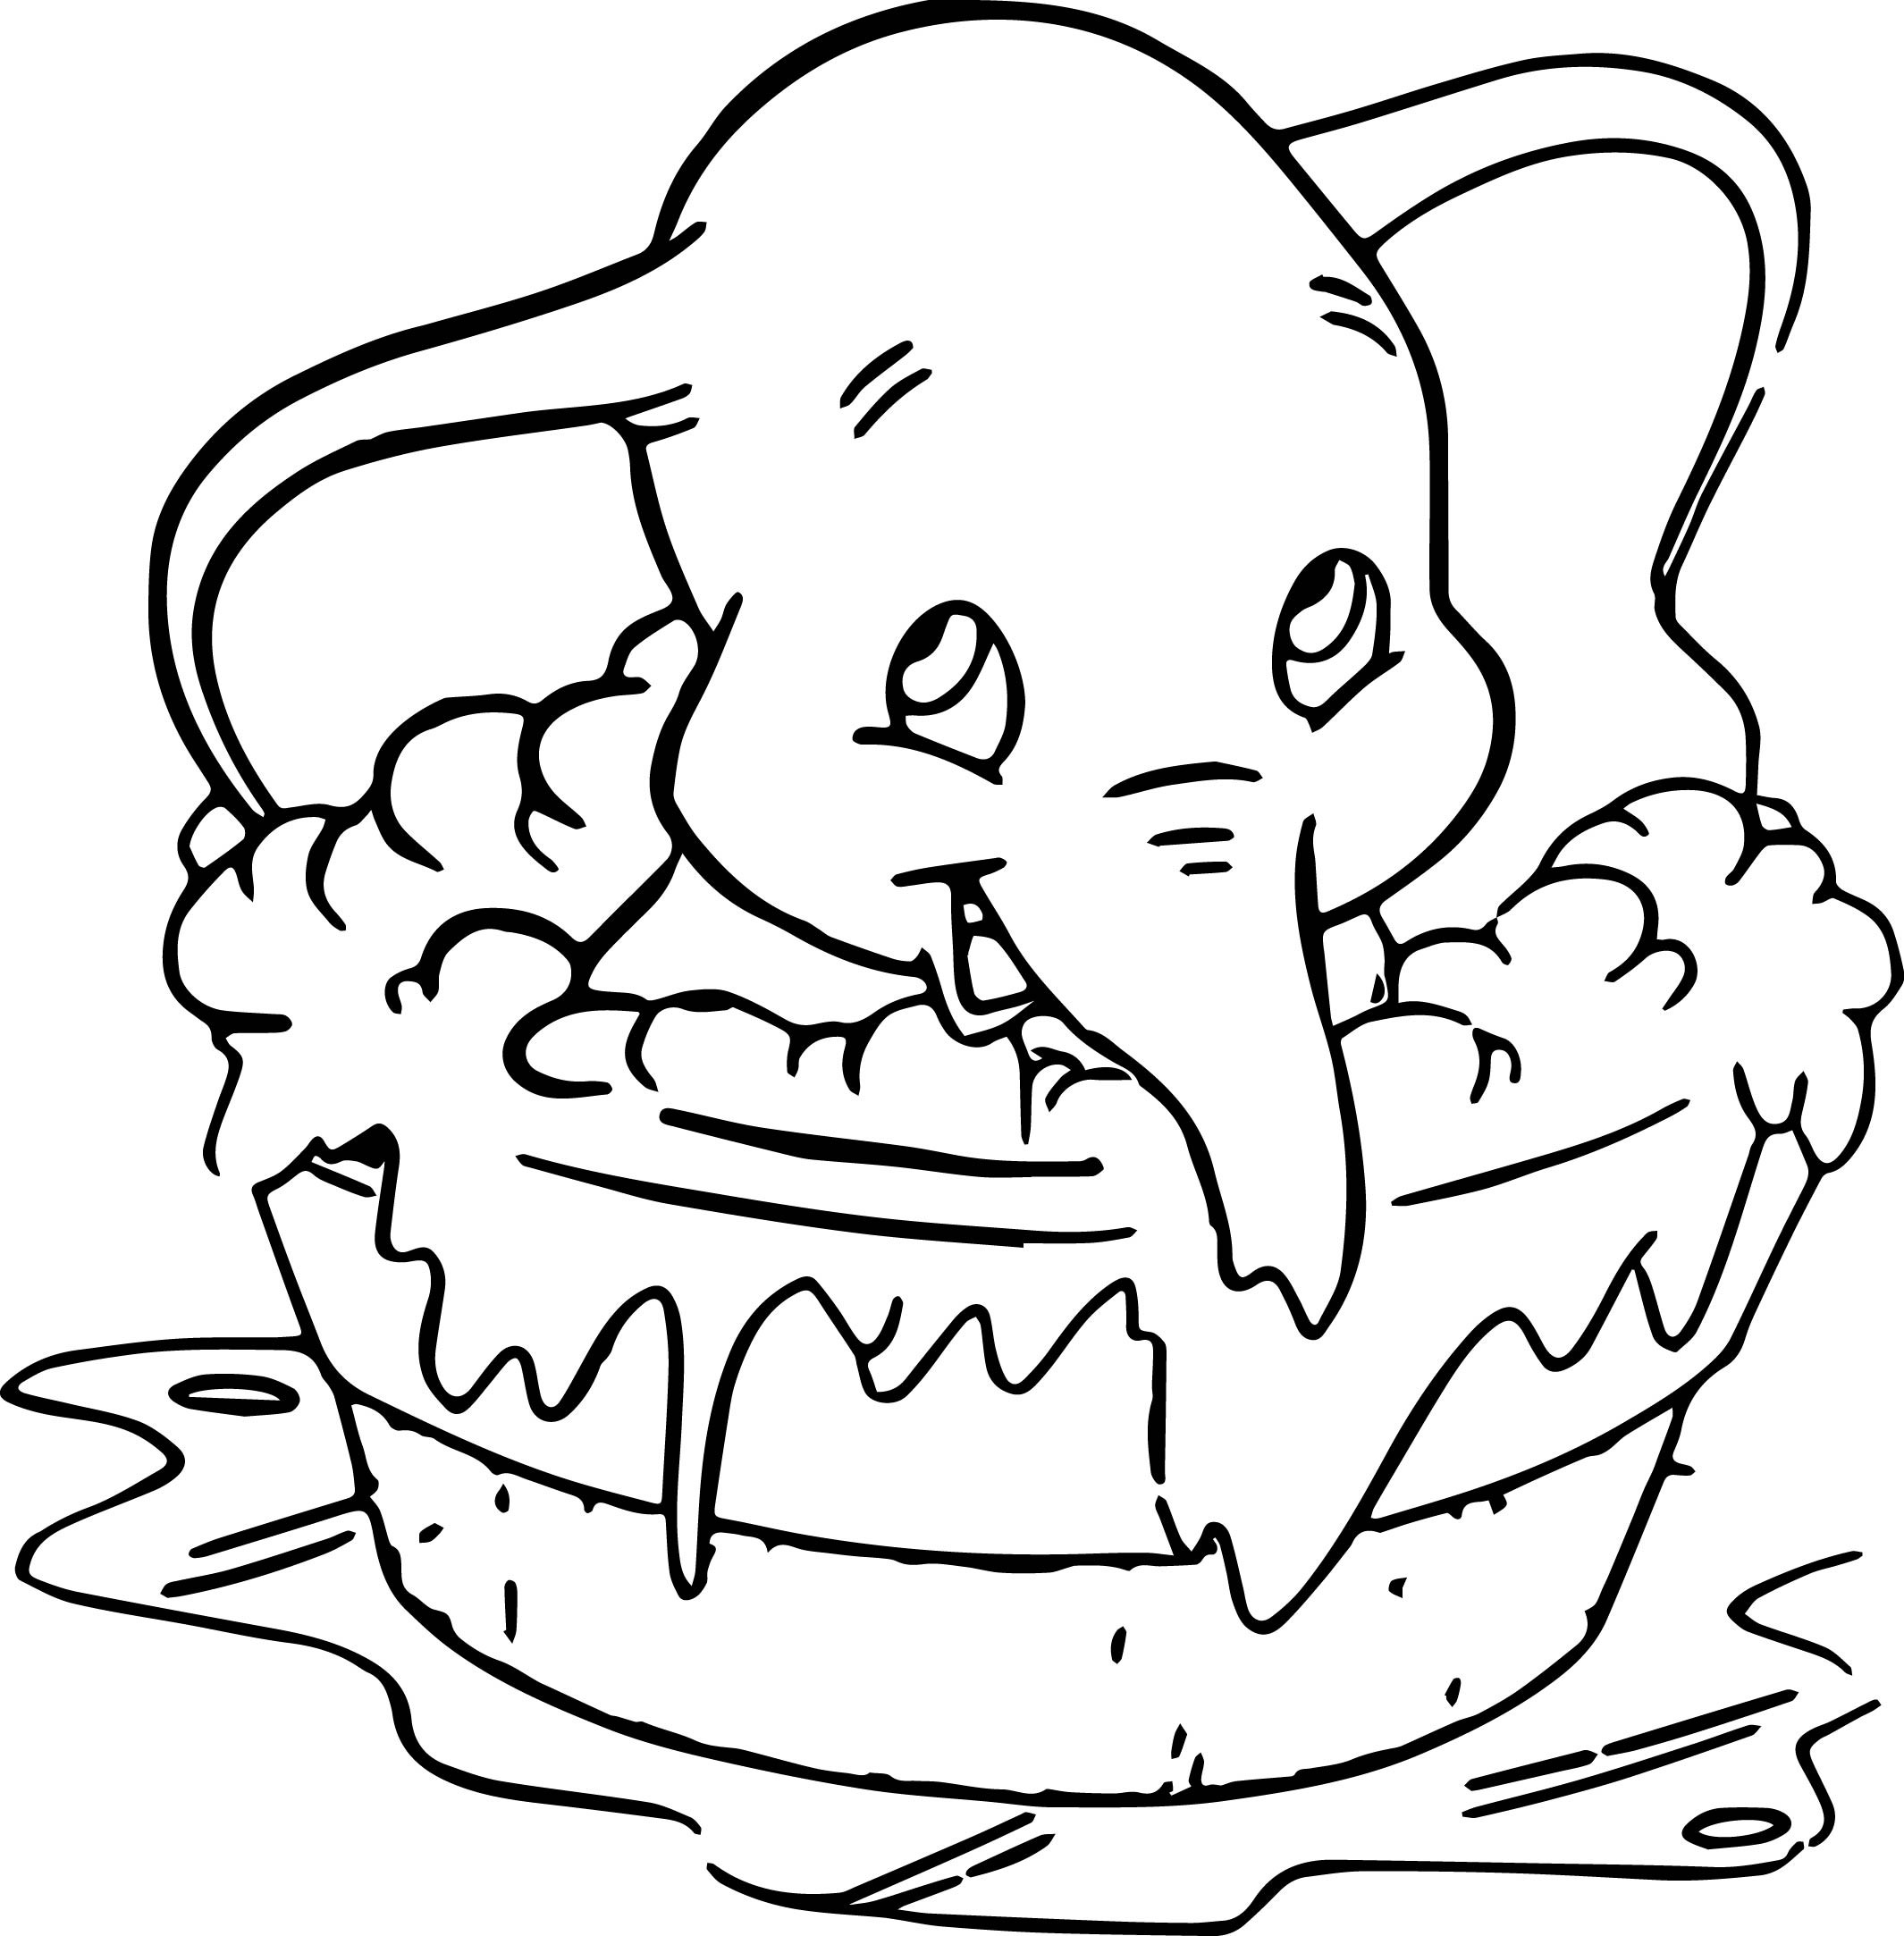 Best ideas about Dumbo Coloring Book Pages . Save or Pin Disney Dumbo Elephant Coloring Pages Now.